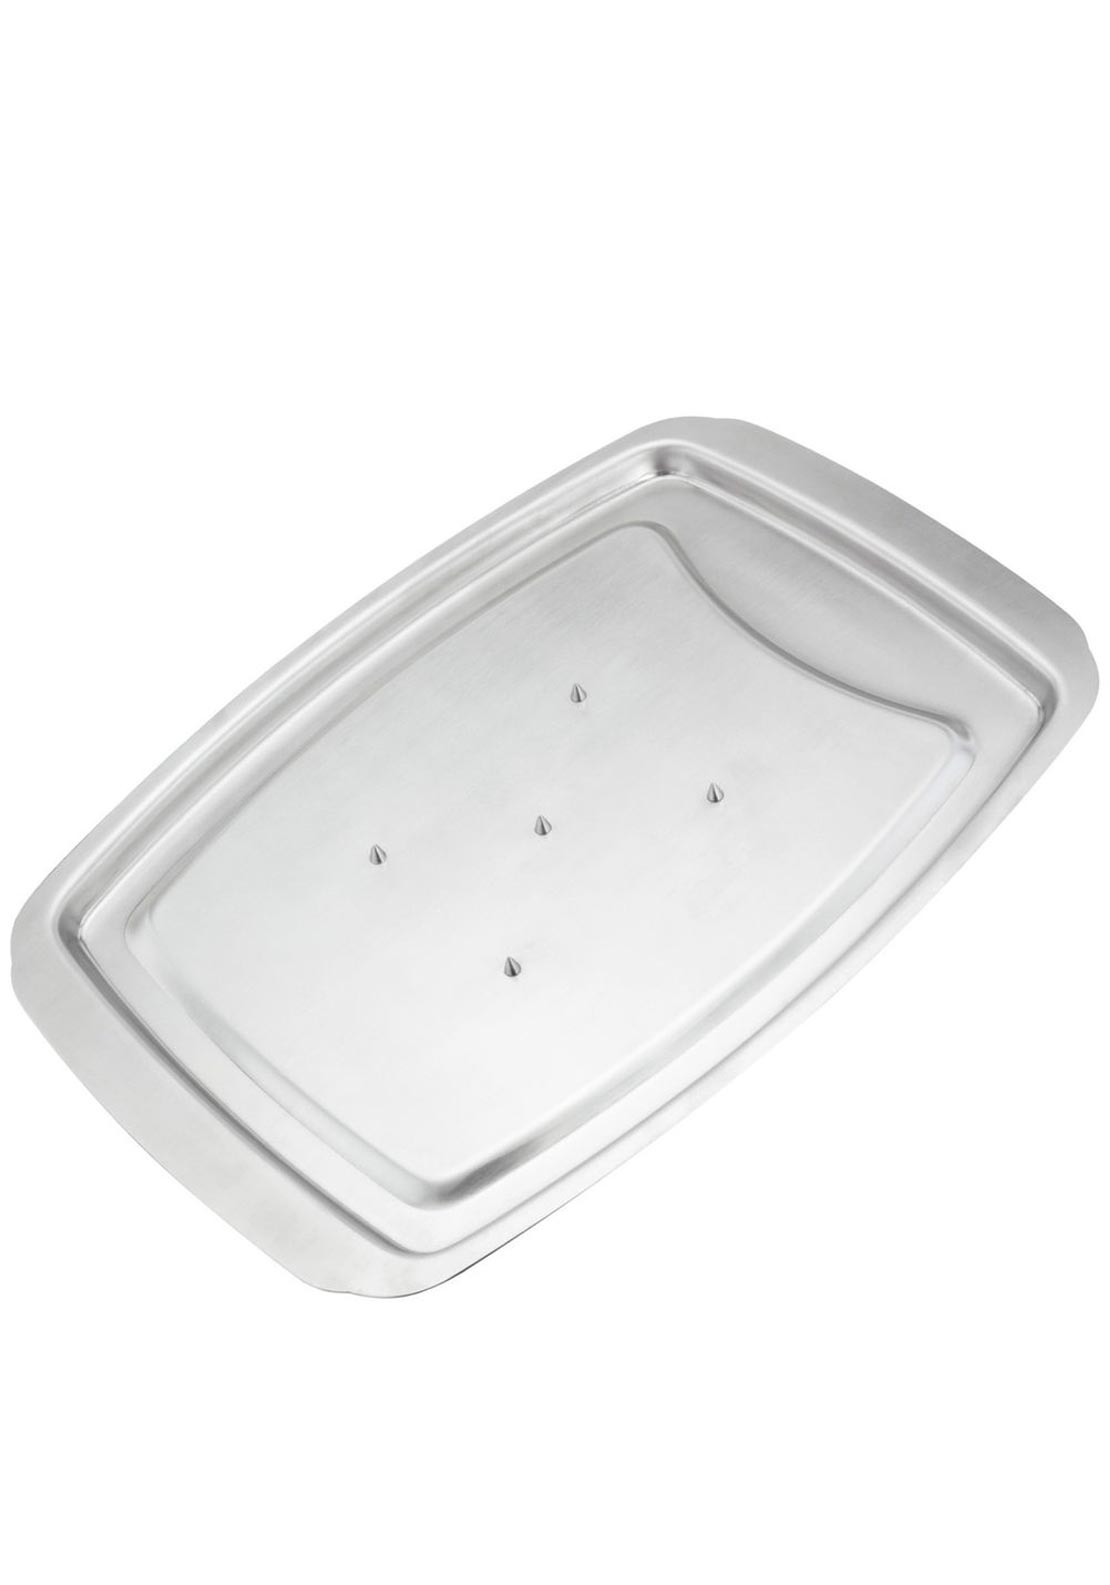 Stellar Kitchen Heavy Grade Stainless Steel Carving Tray, 38x26cm